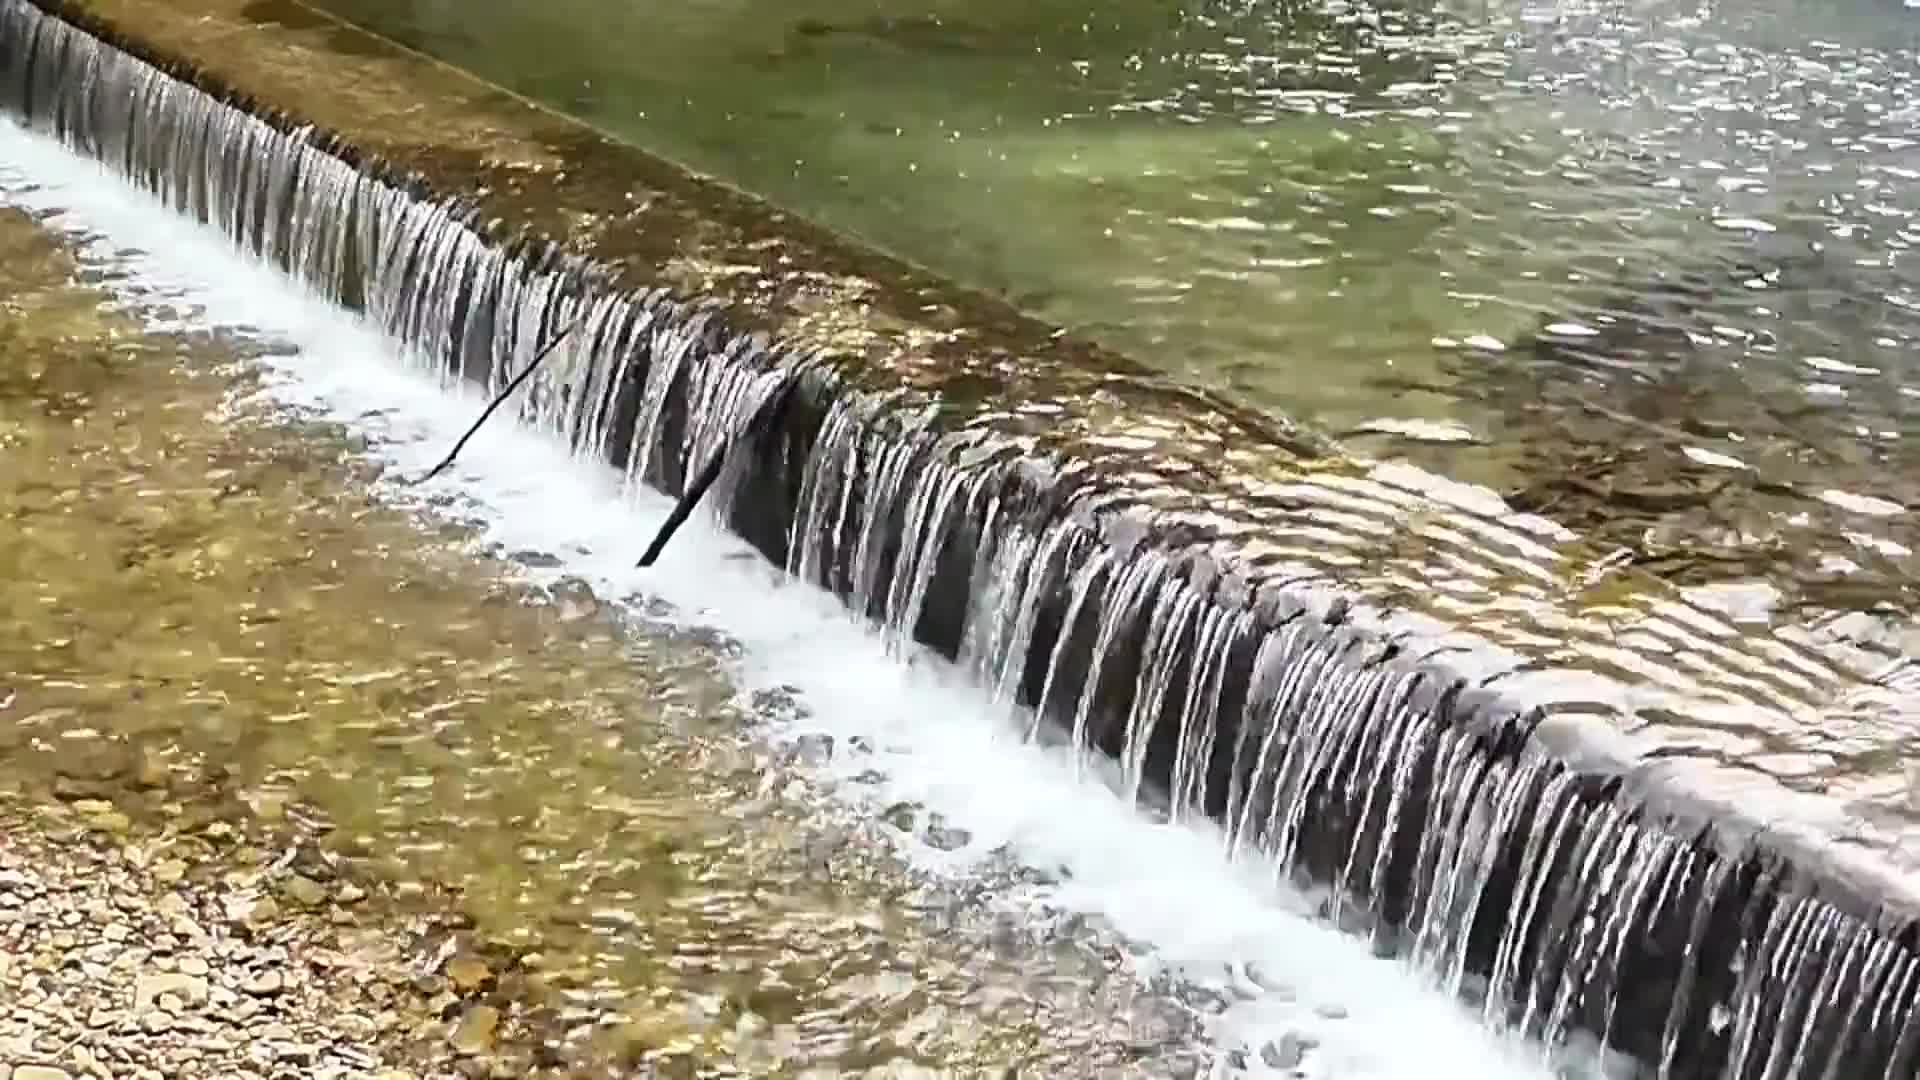 Video of waterfalls during daytime